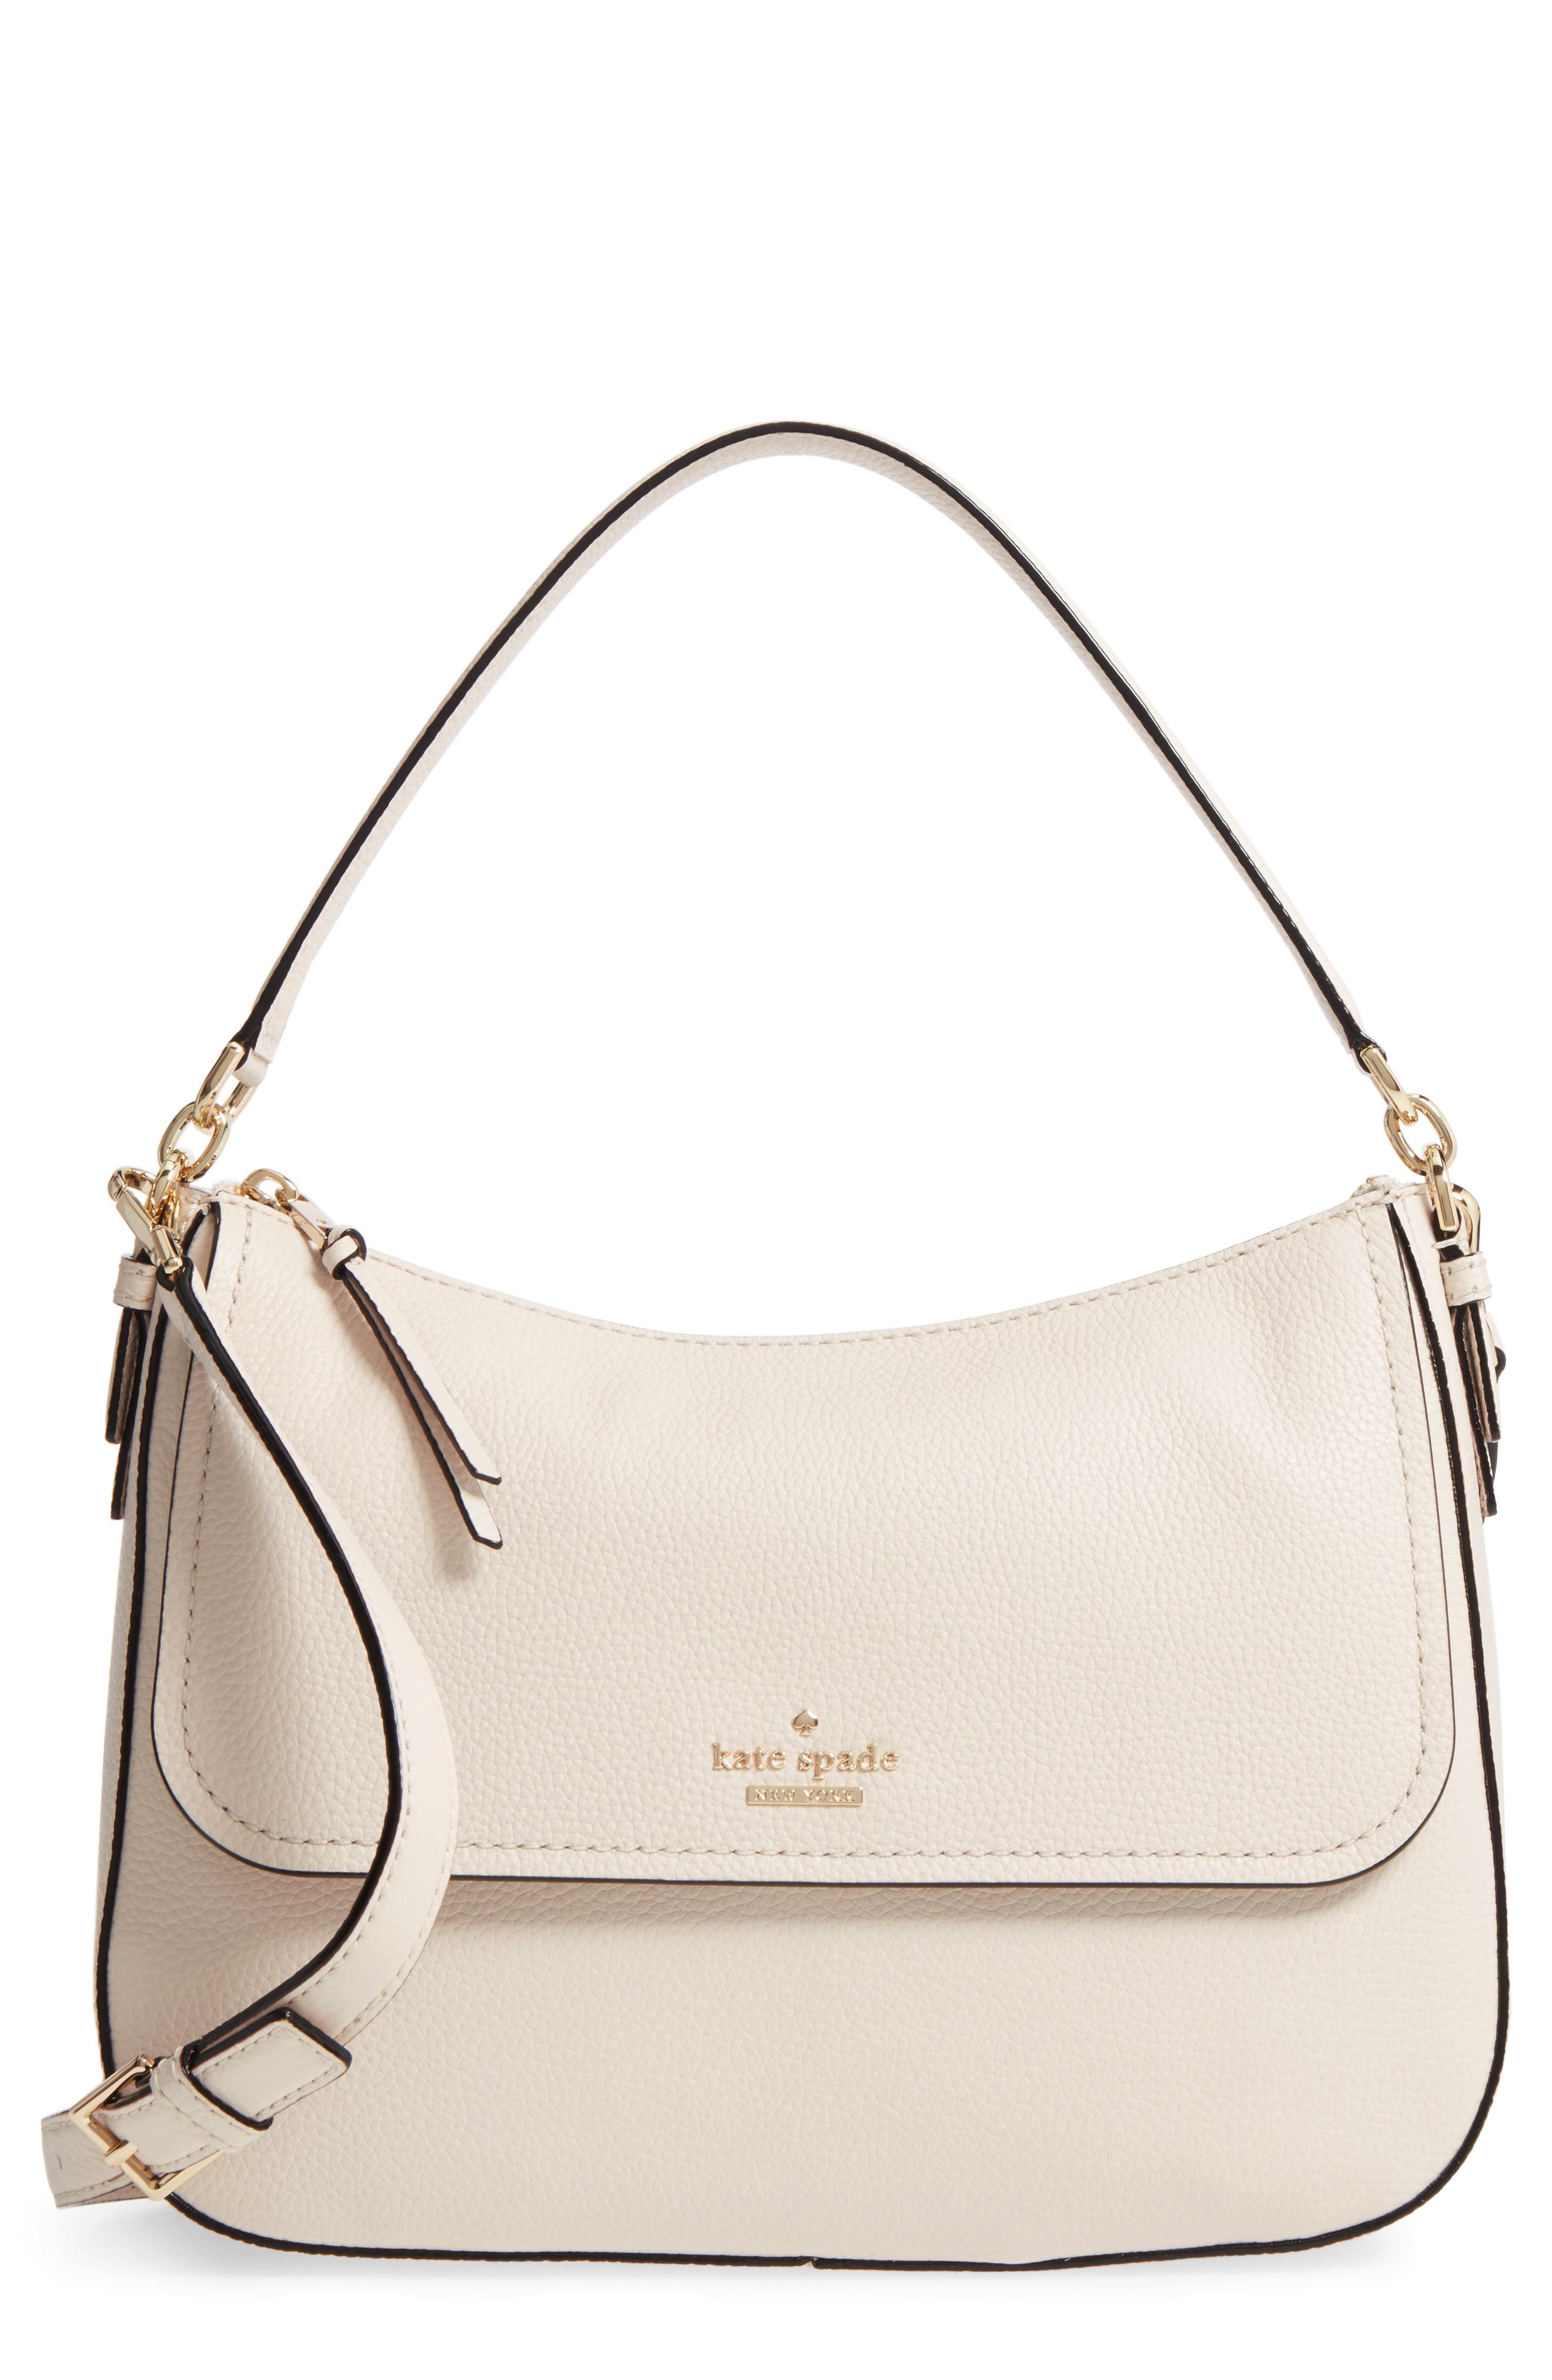 Kate spade new york jackson street - colette leather satchel (Nordstrom Exclusive)